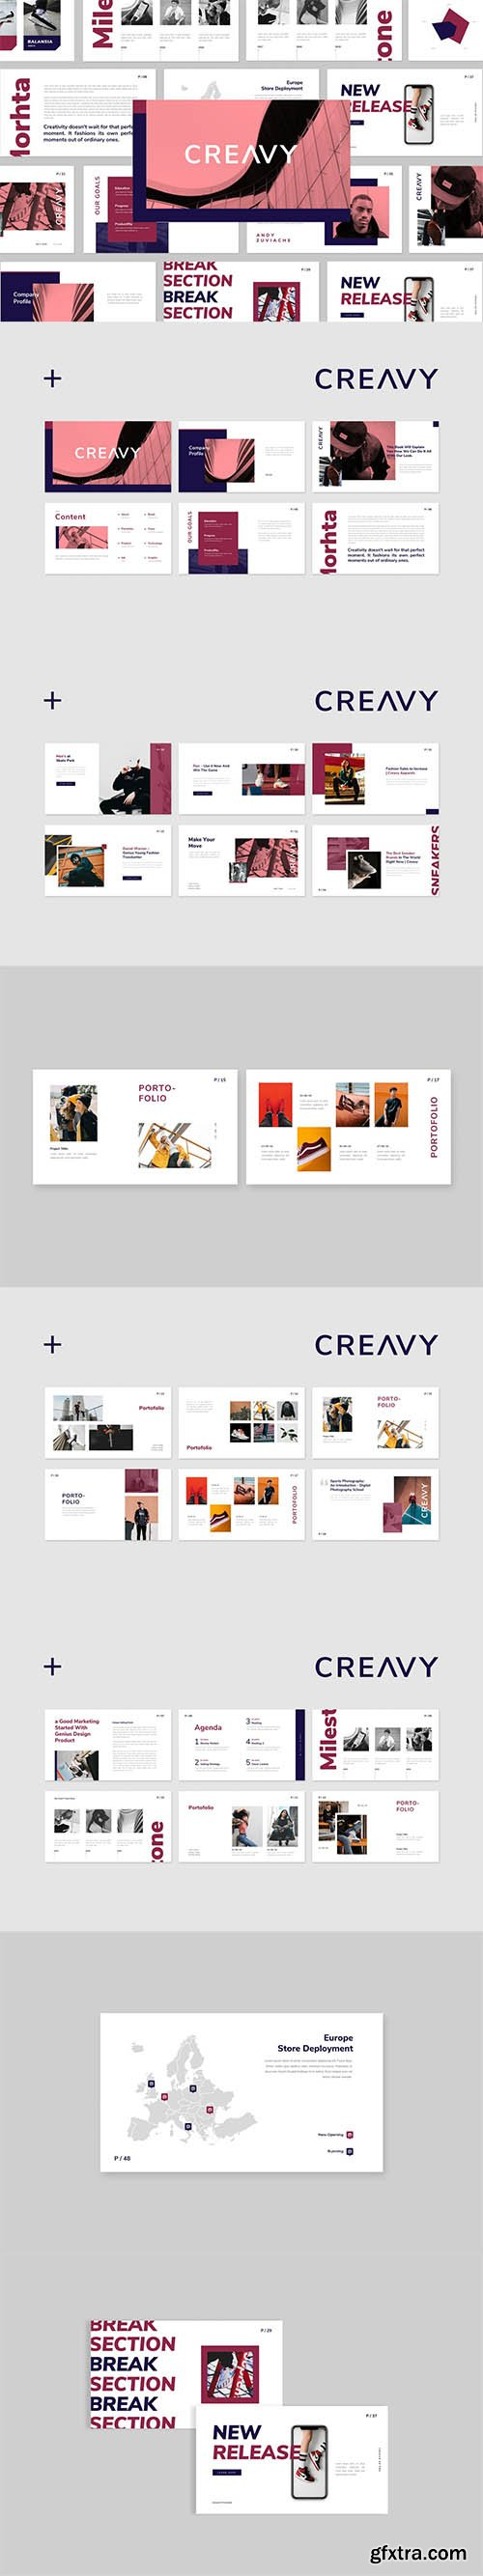 Creavy Powerpoint, Keynote and Google Slides Templates